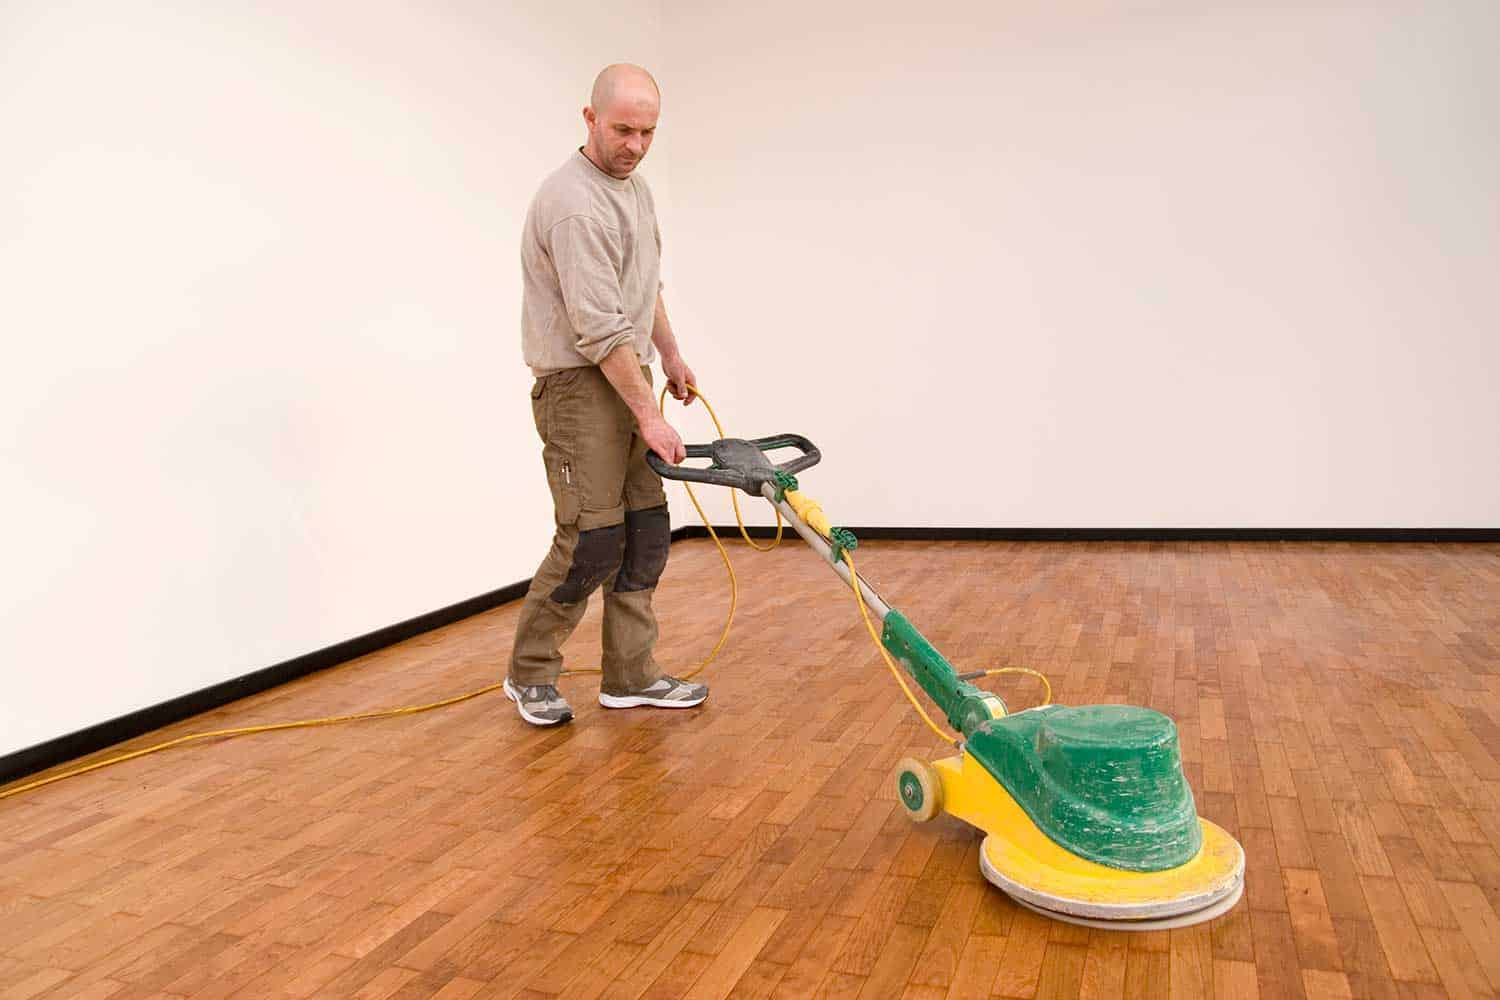 Carpenter polishing new parquet floor with wood oil using industrial polisher in an office